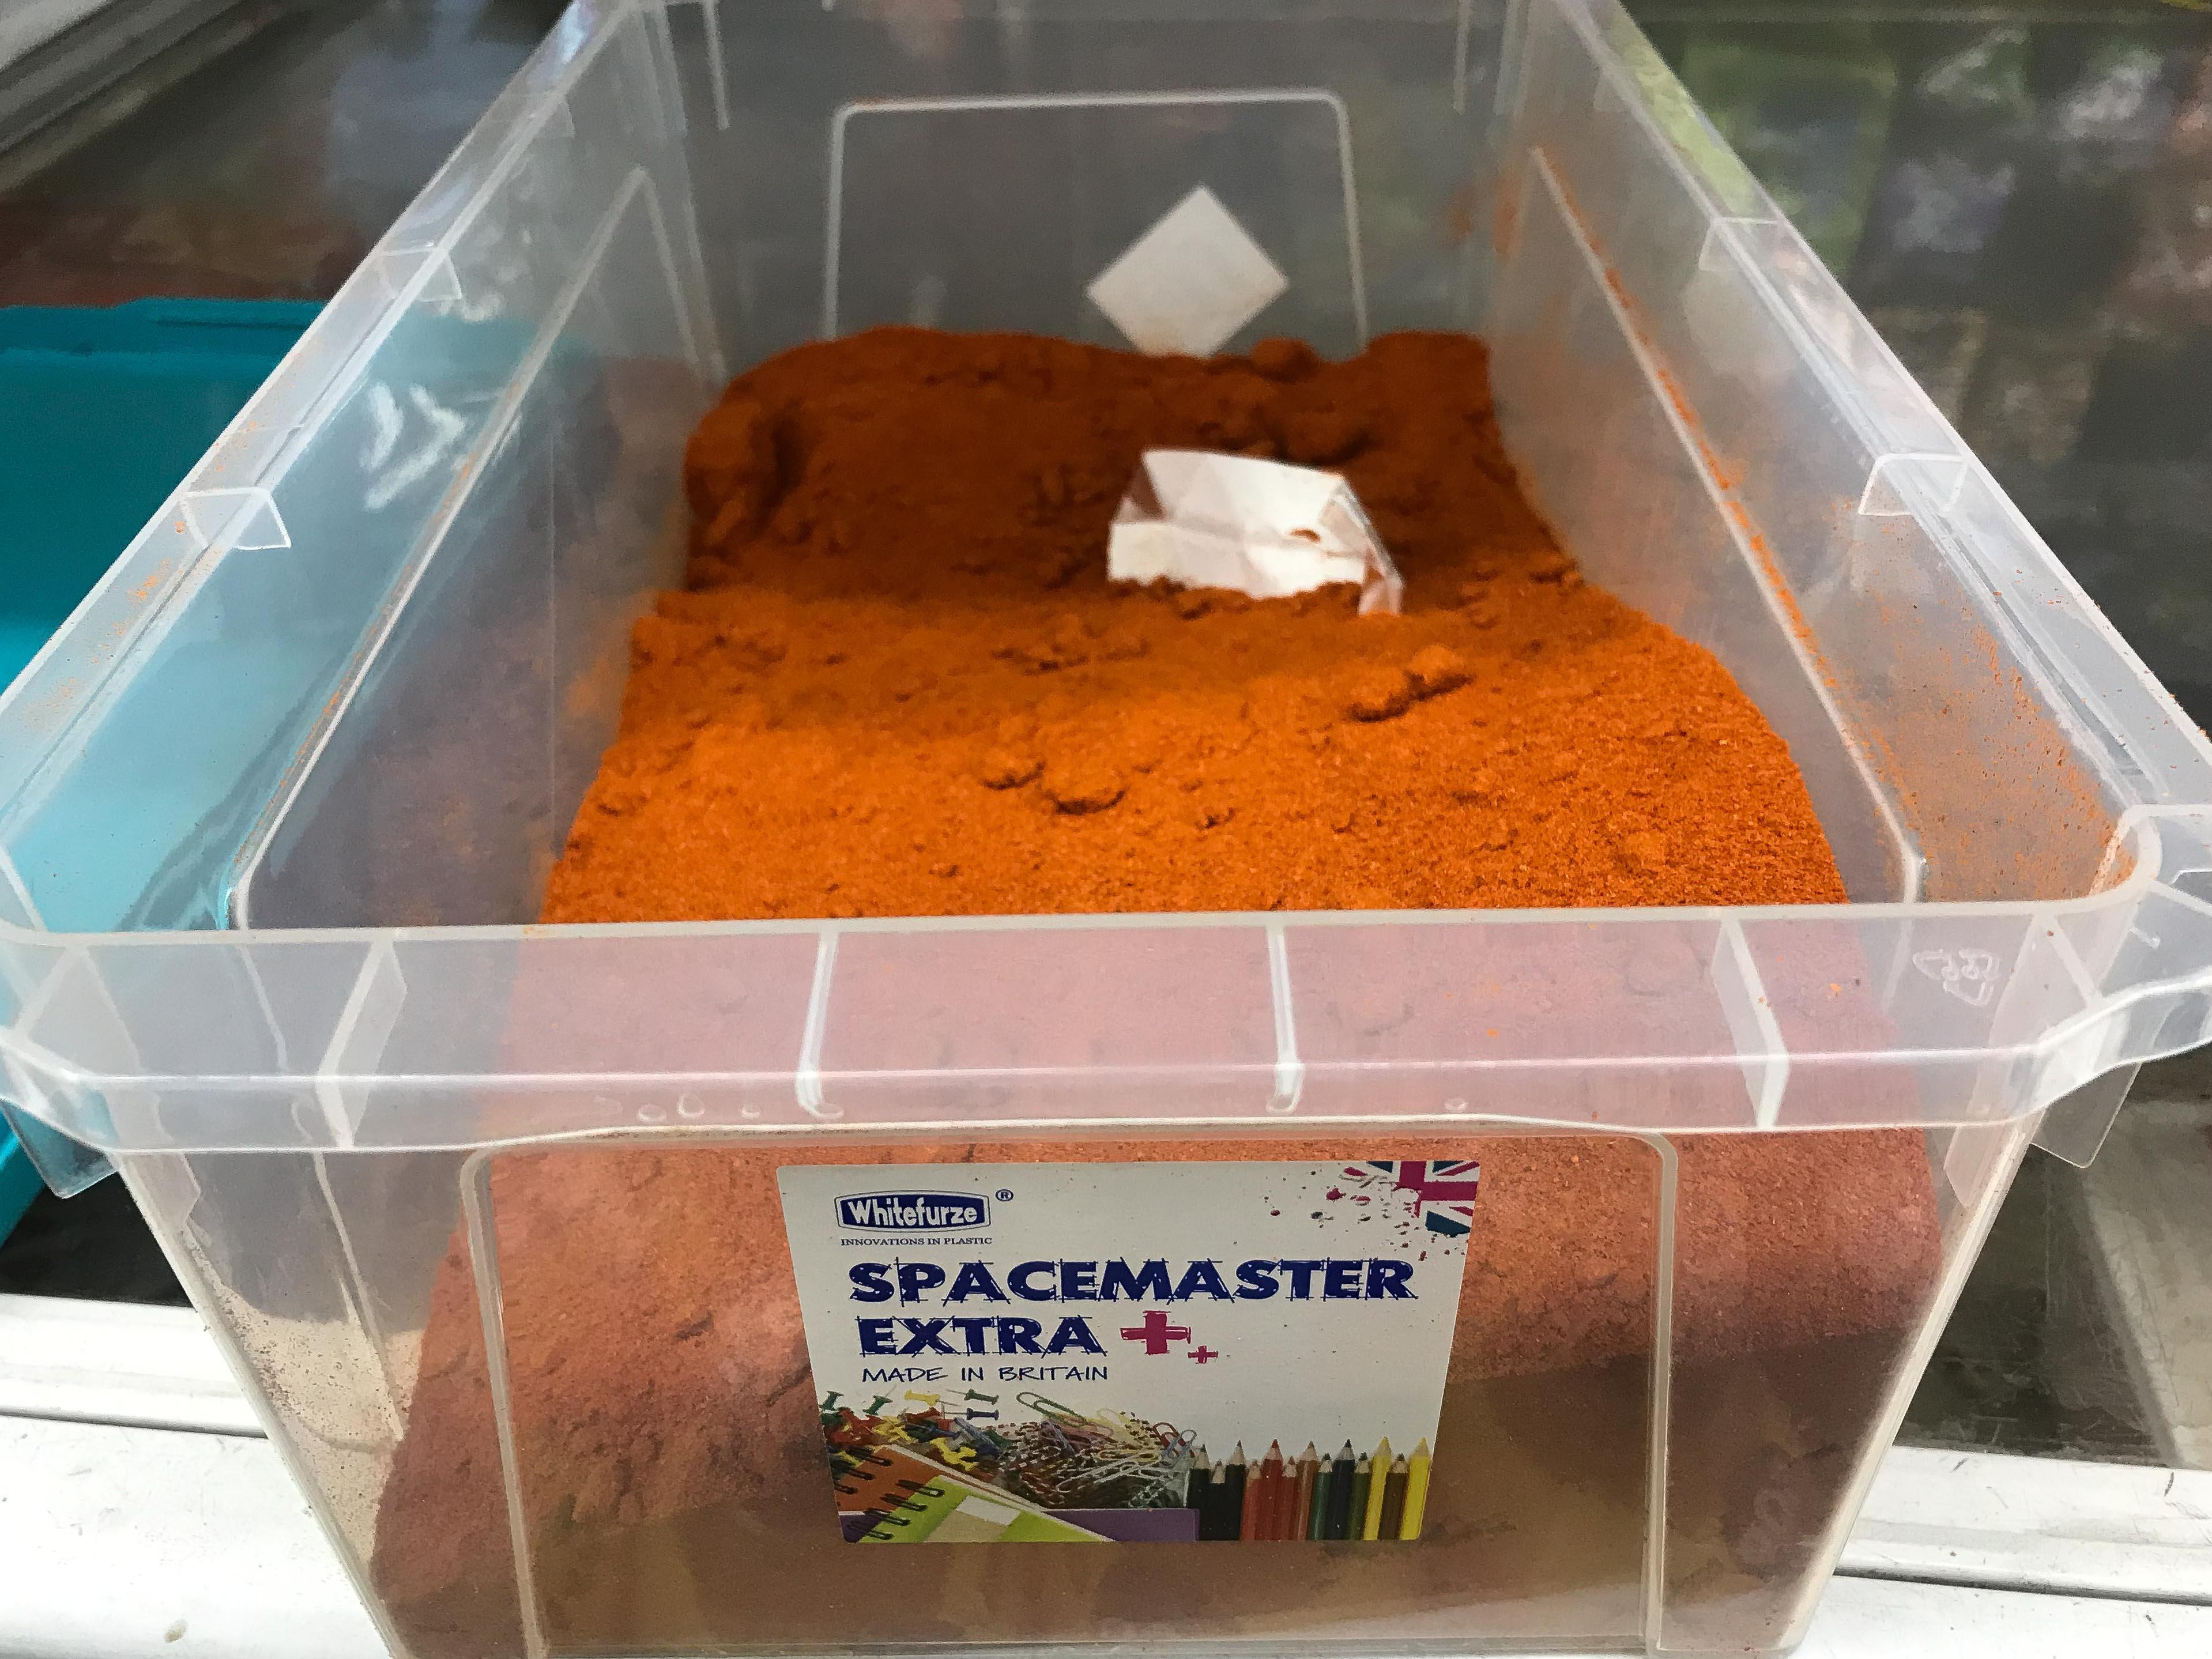 Chilli powder was kept under the counter( Picture: SWNS)